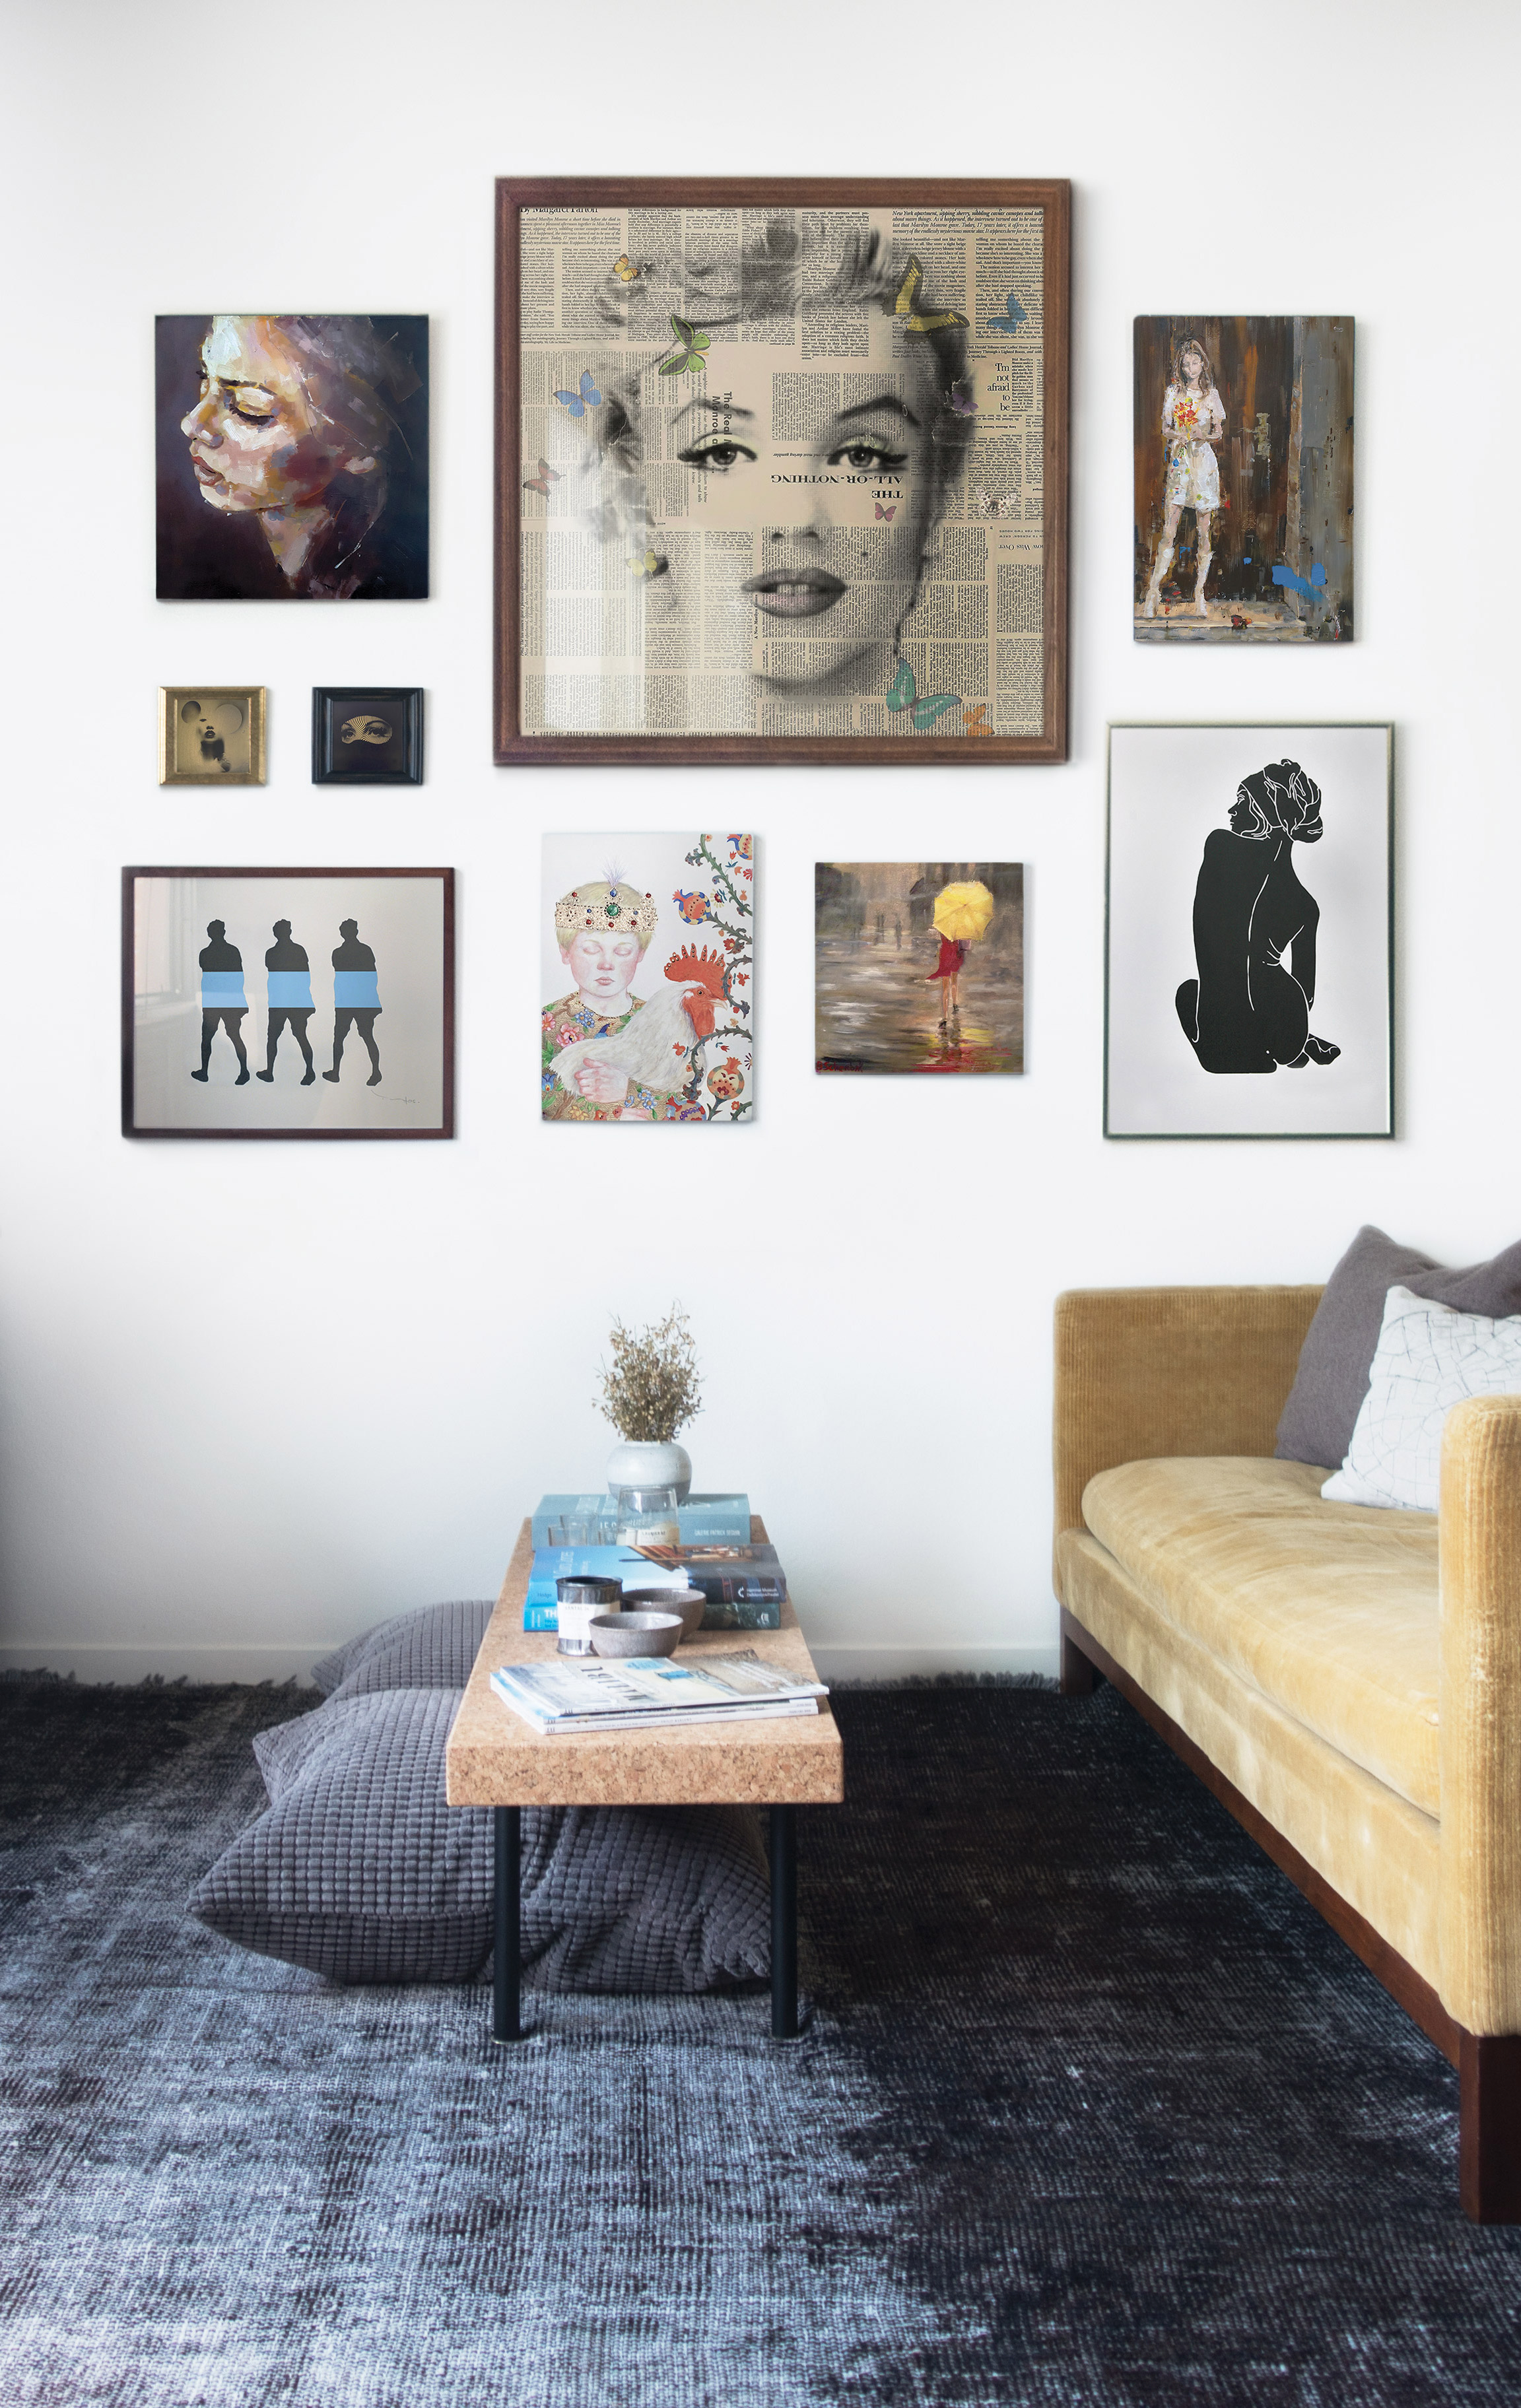 Picture Perfect: Salon-Style Gallery Walls